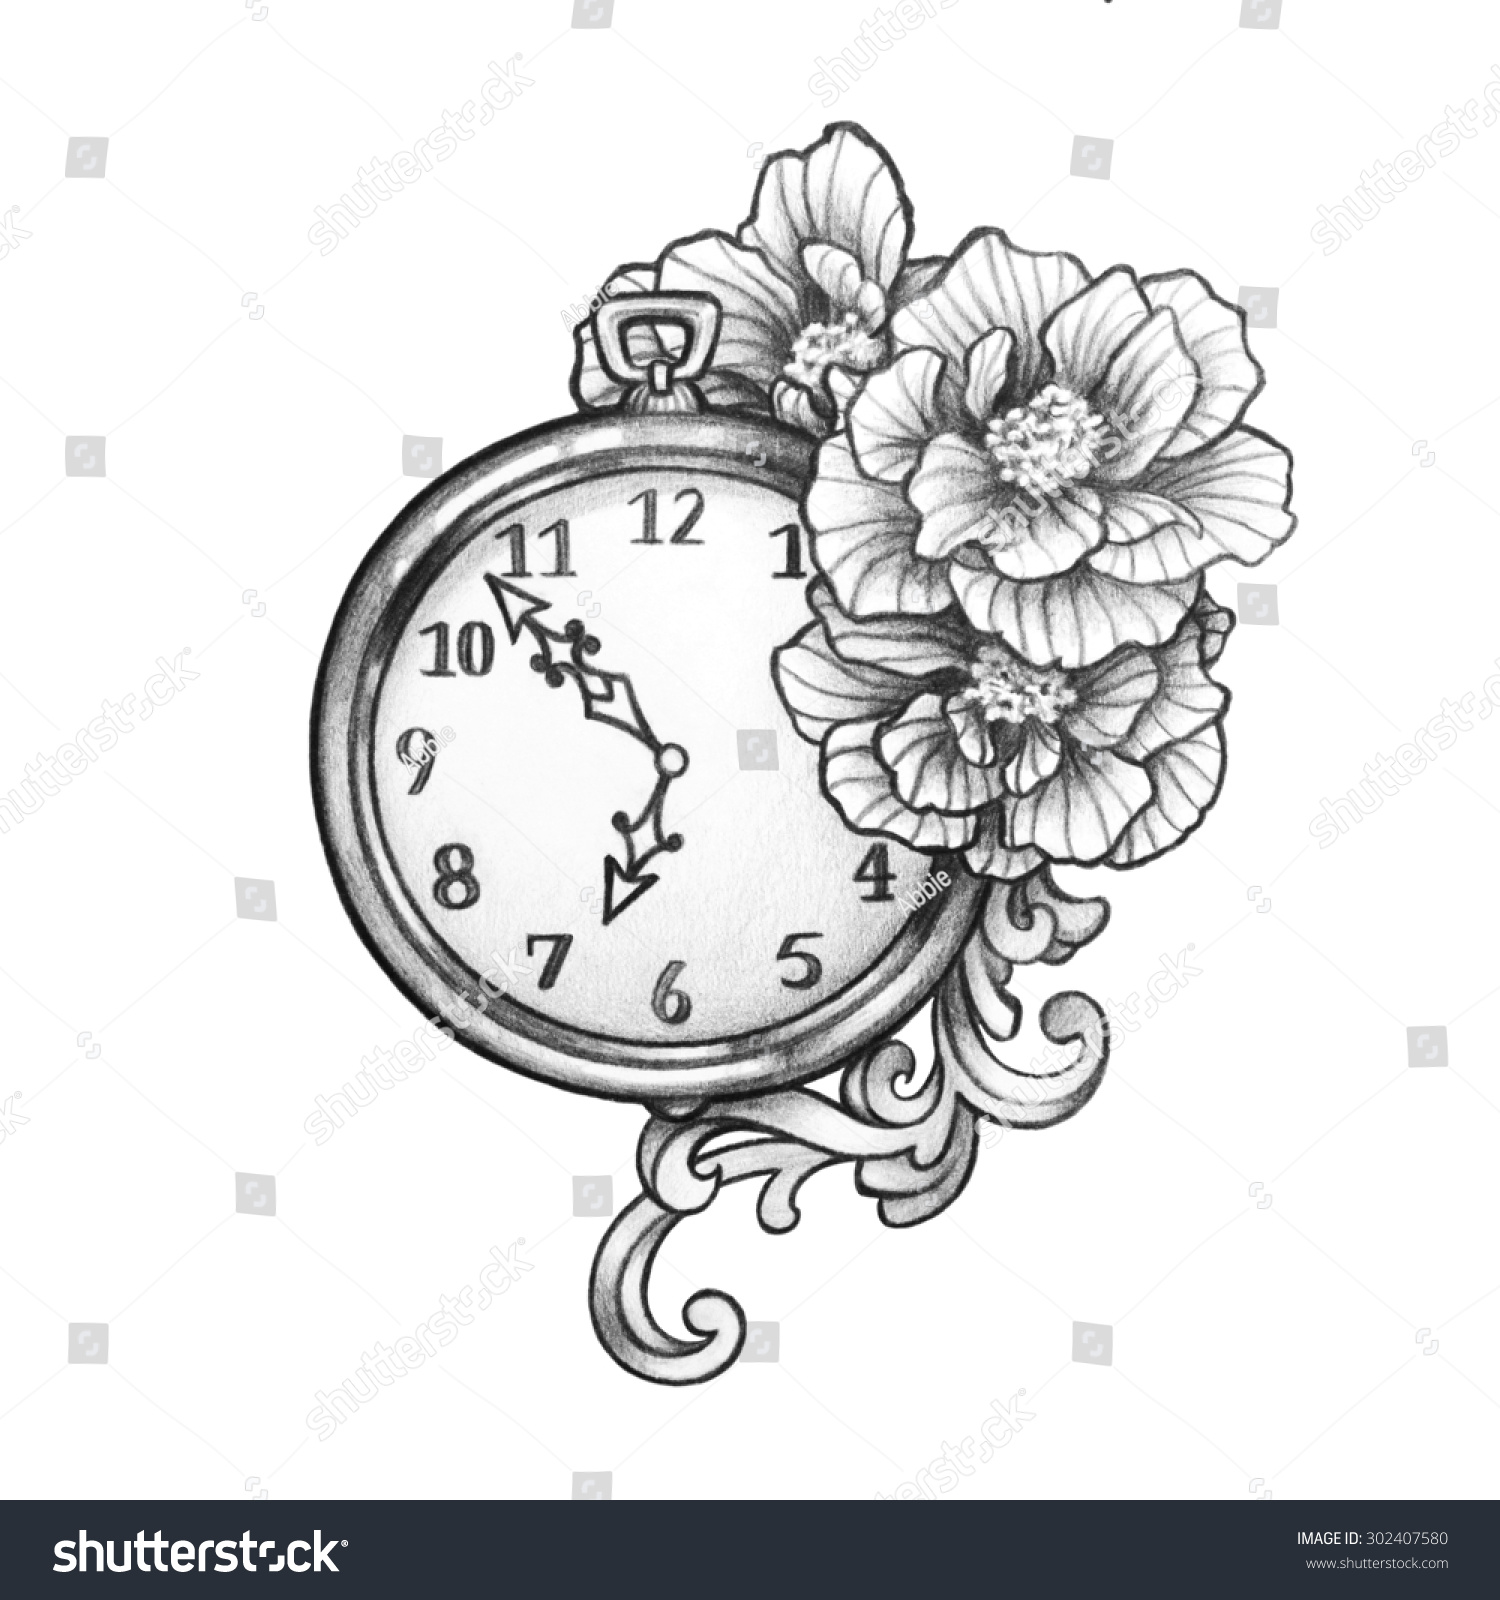 Hand Drawn Clock Watch Old Victorian Stock Illustration